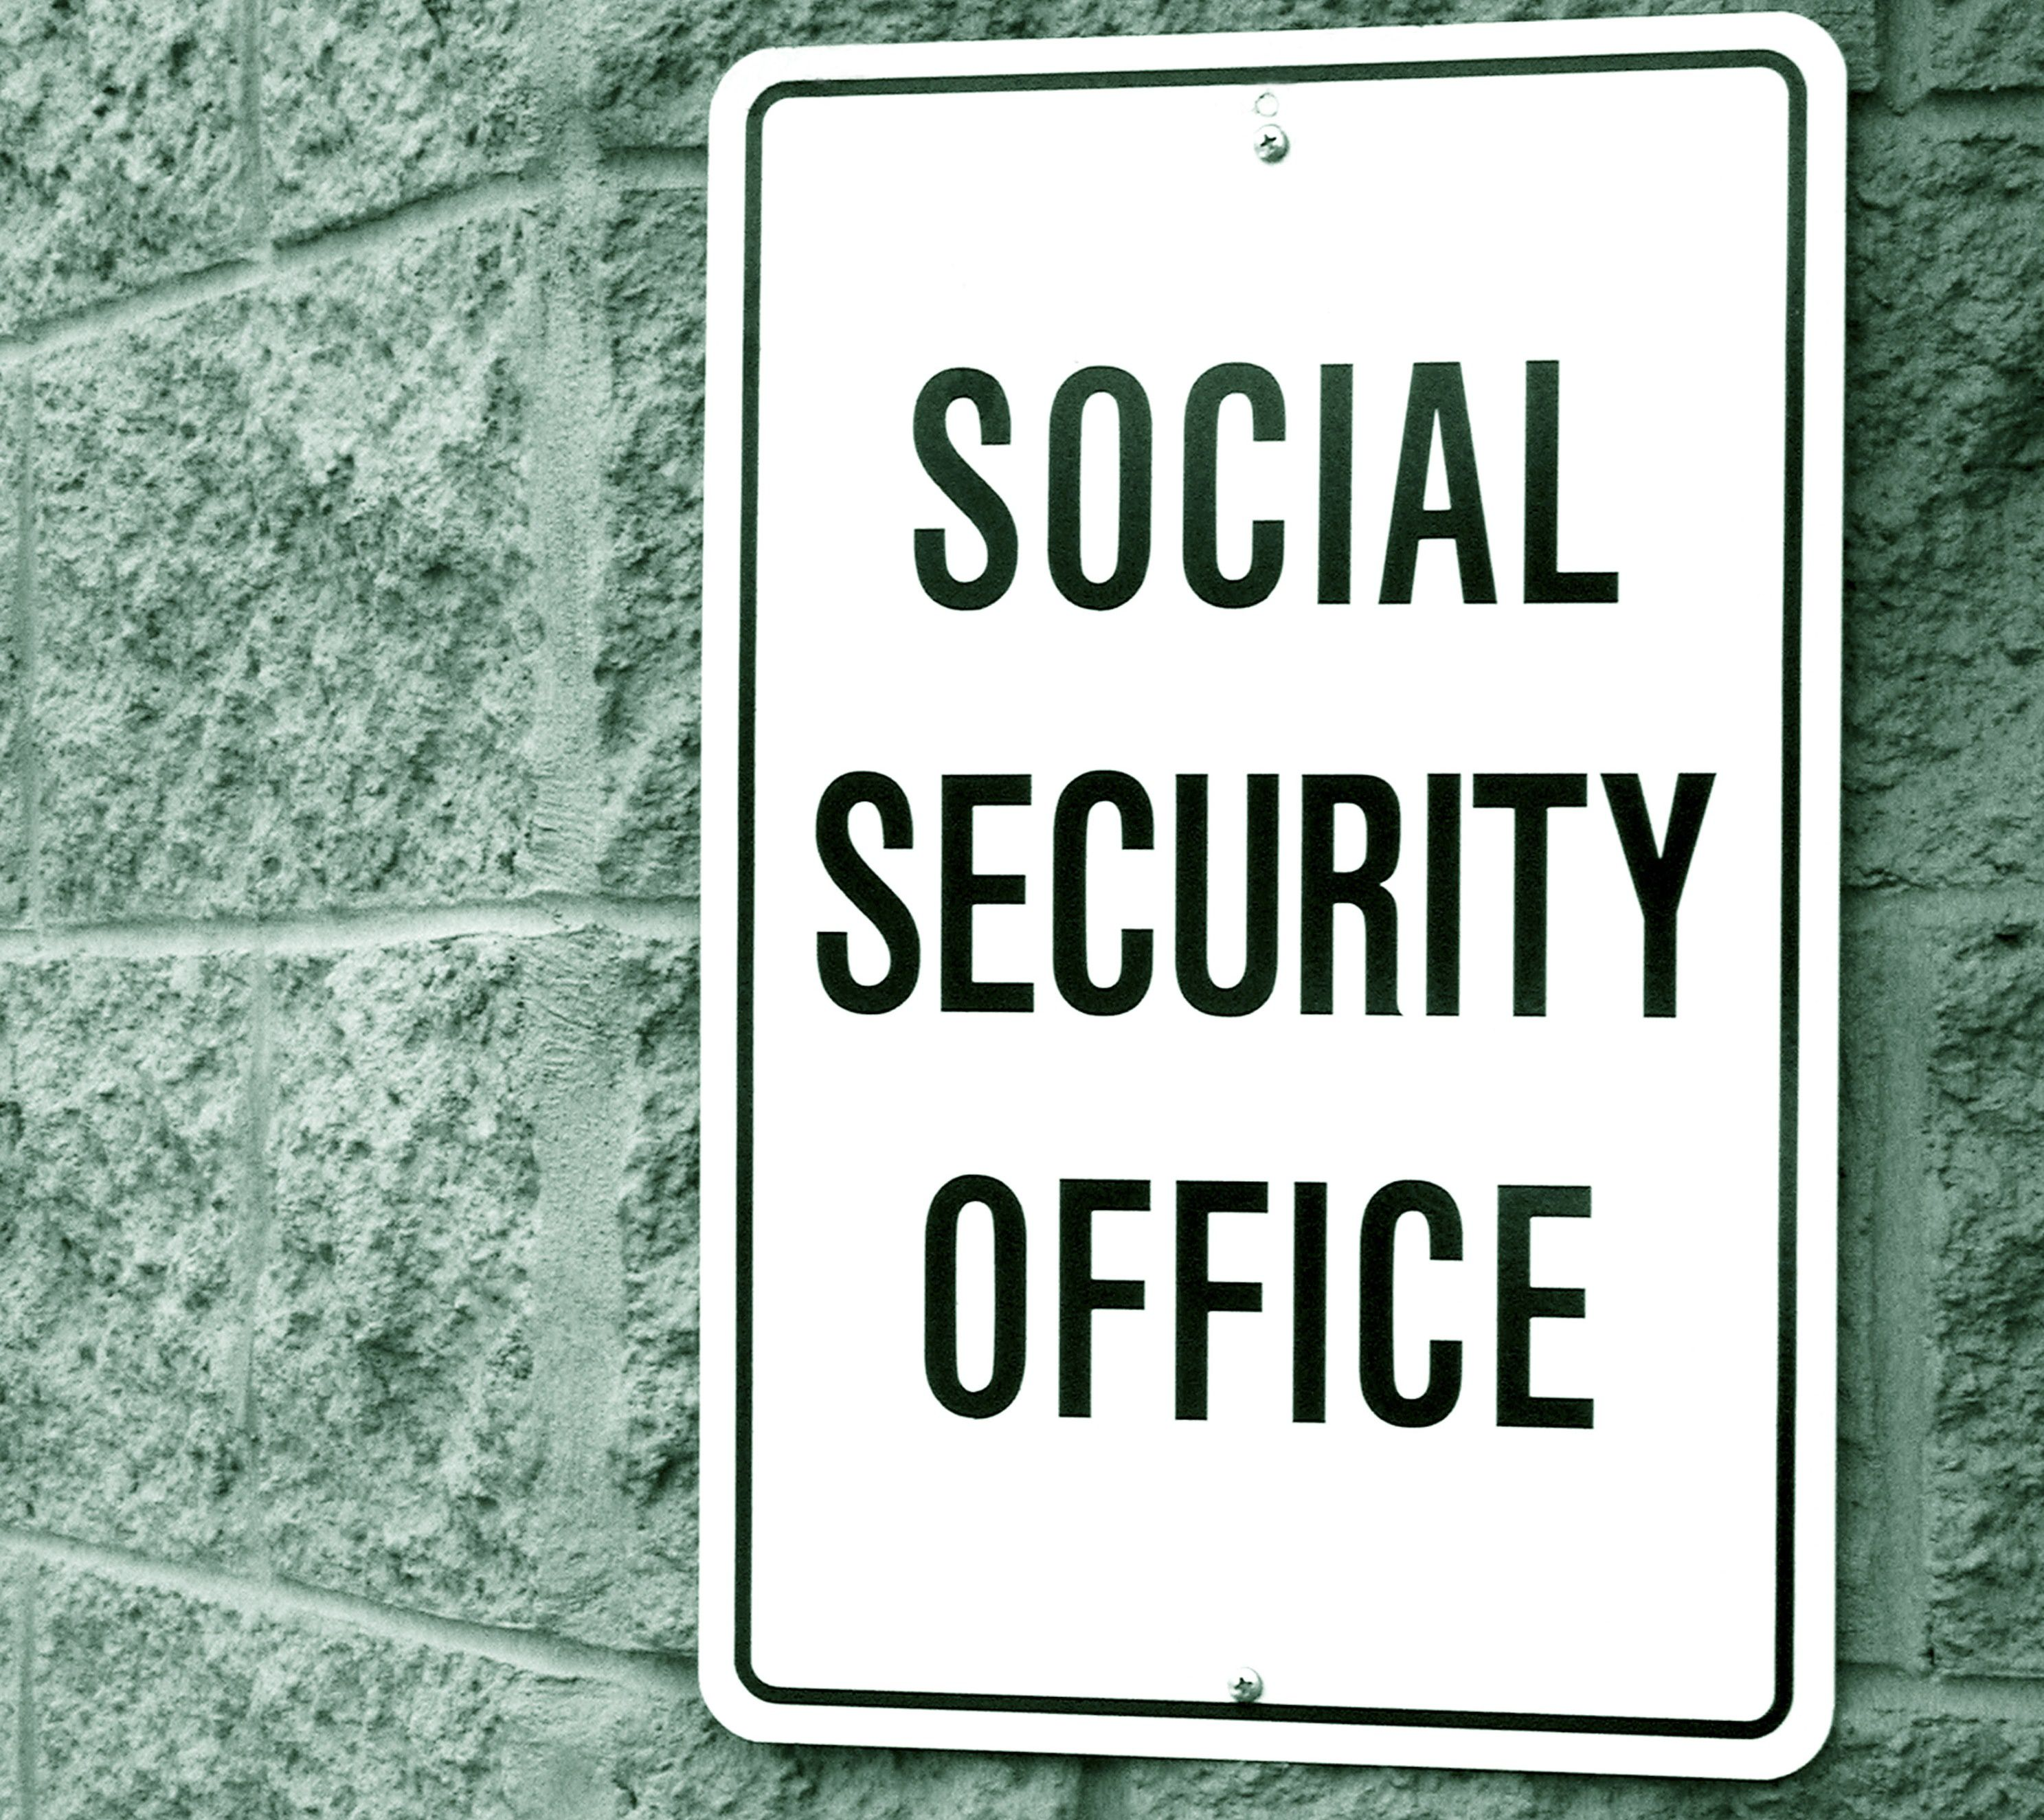 is social security office open today